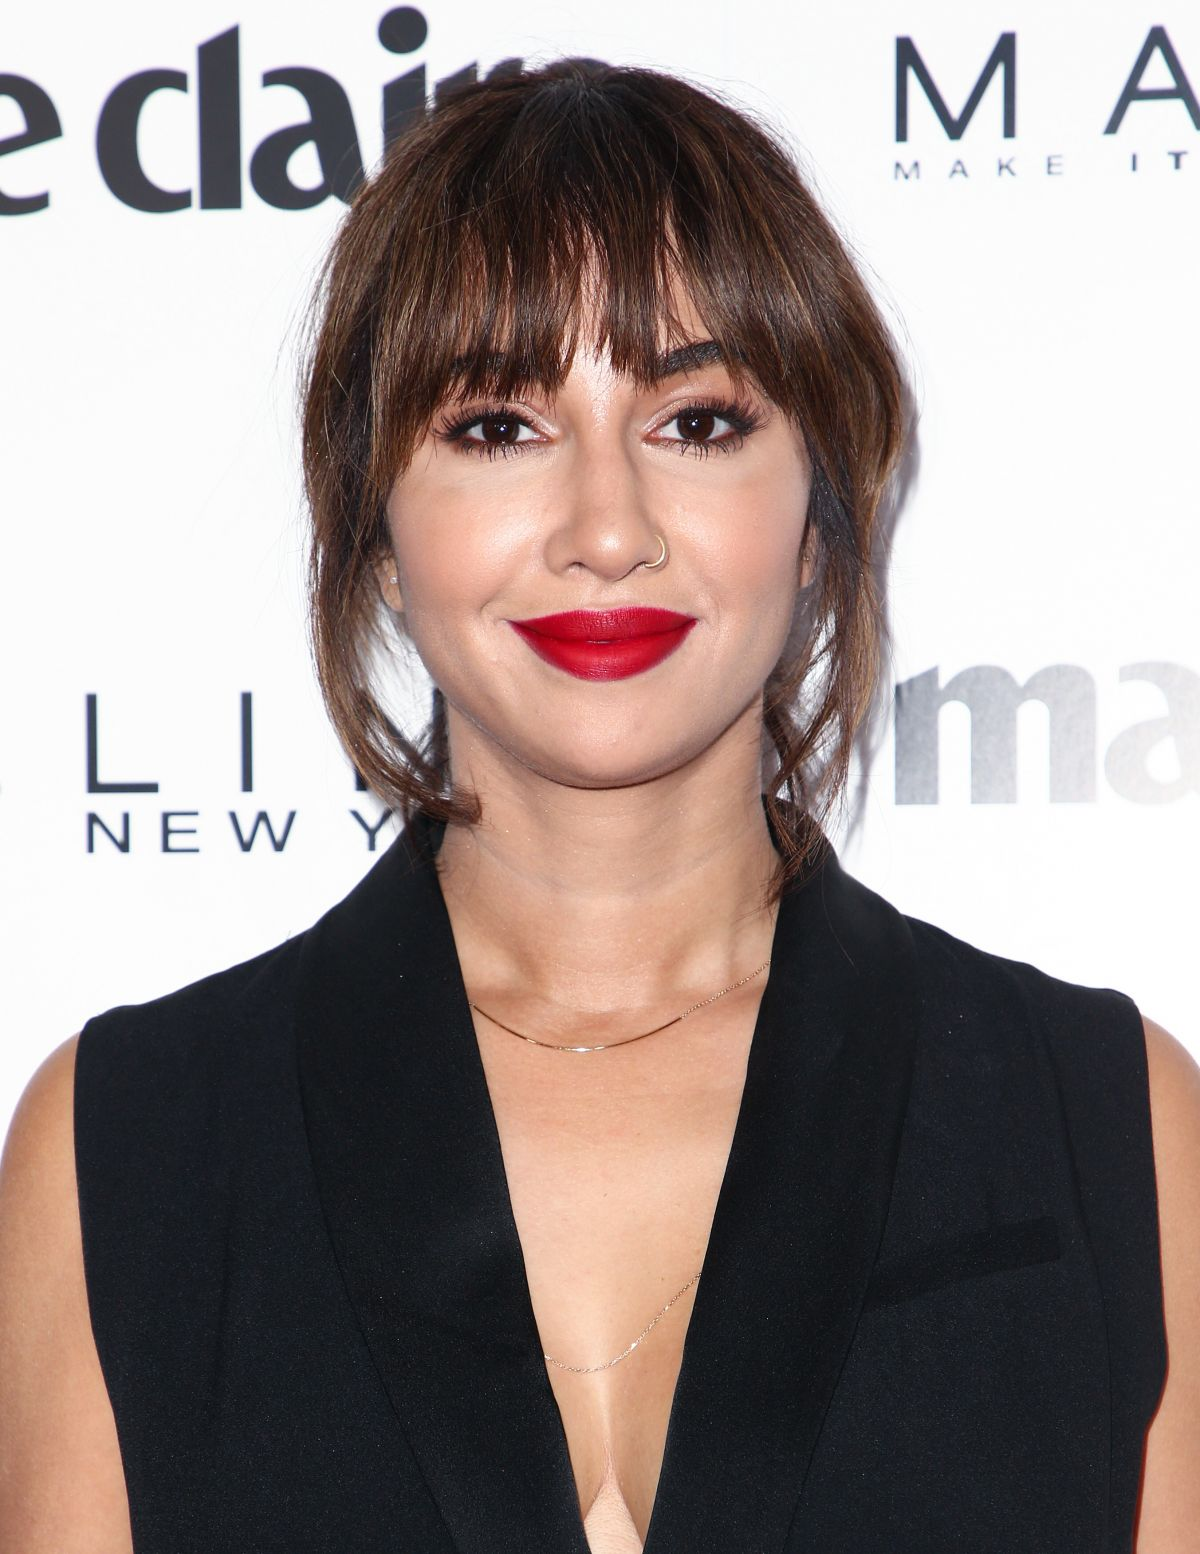 JACKIE CRUZ at Marie Claire Celebrates Fresh Faces in Los Angeles 04/21/2017 - HawtCelebs